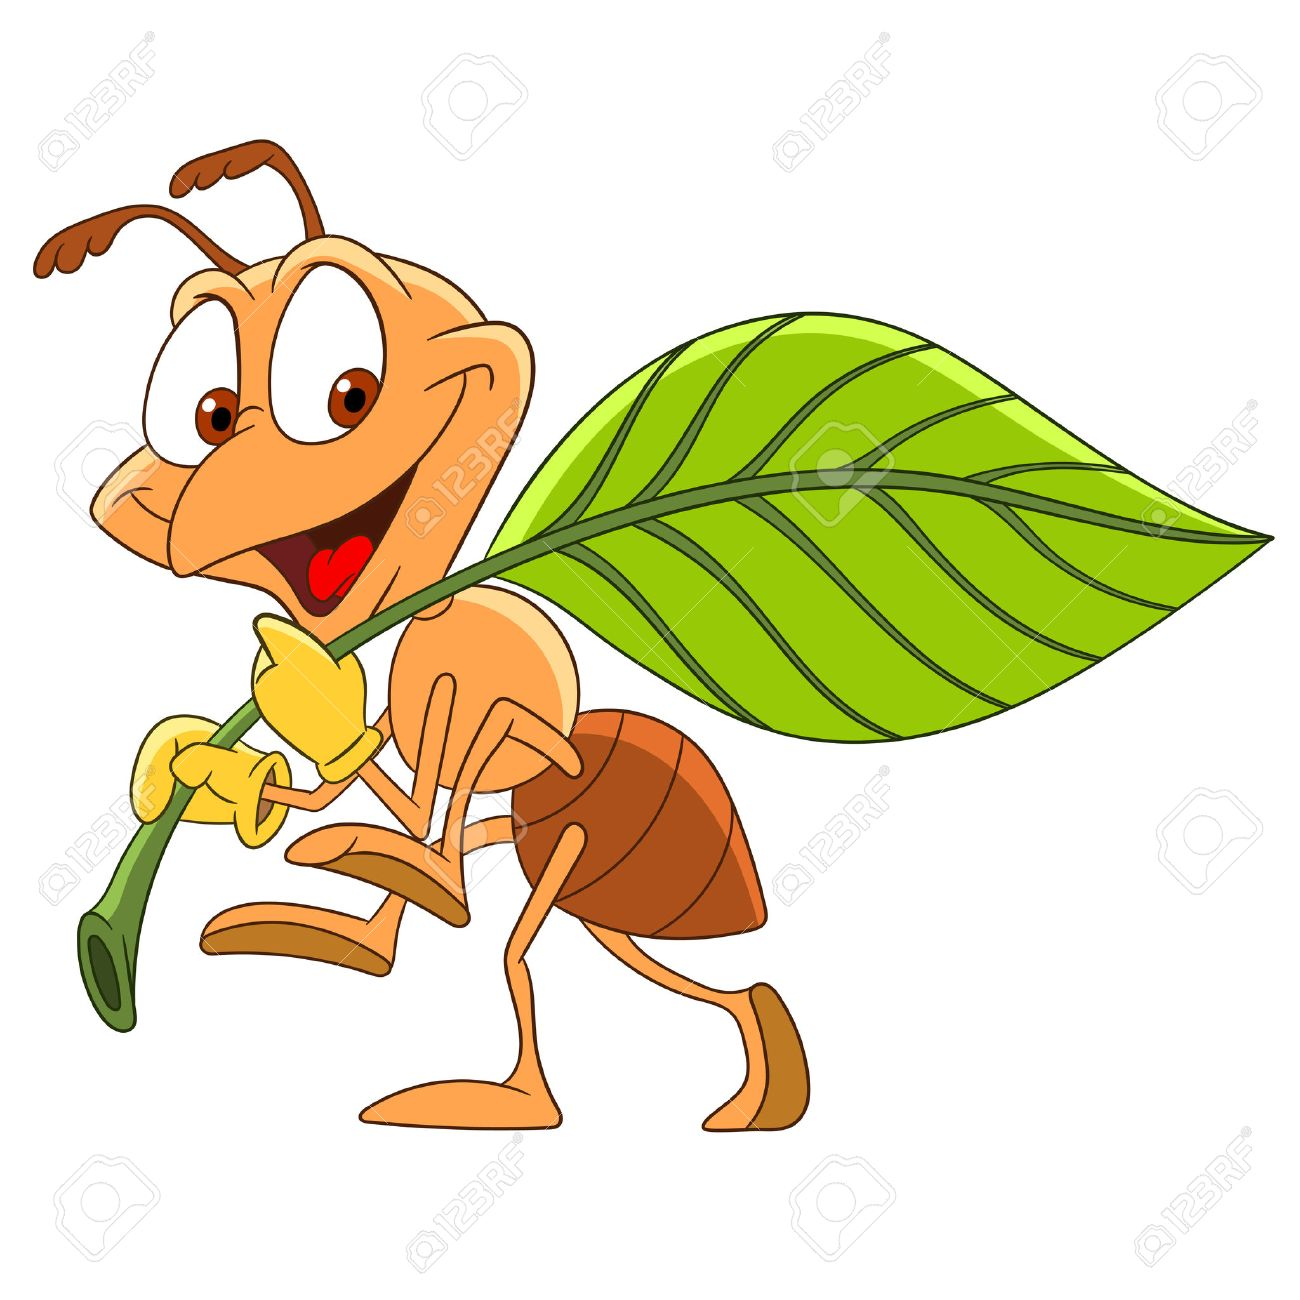 Hard Working Ant Clipart.